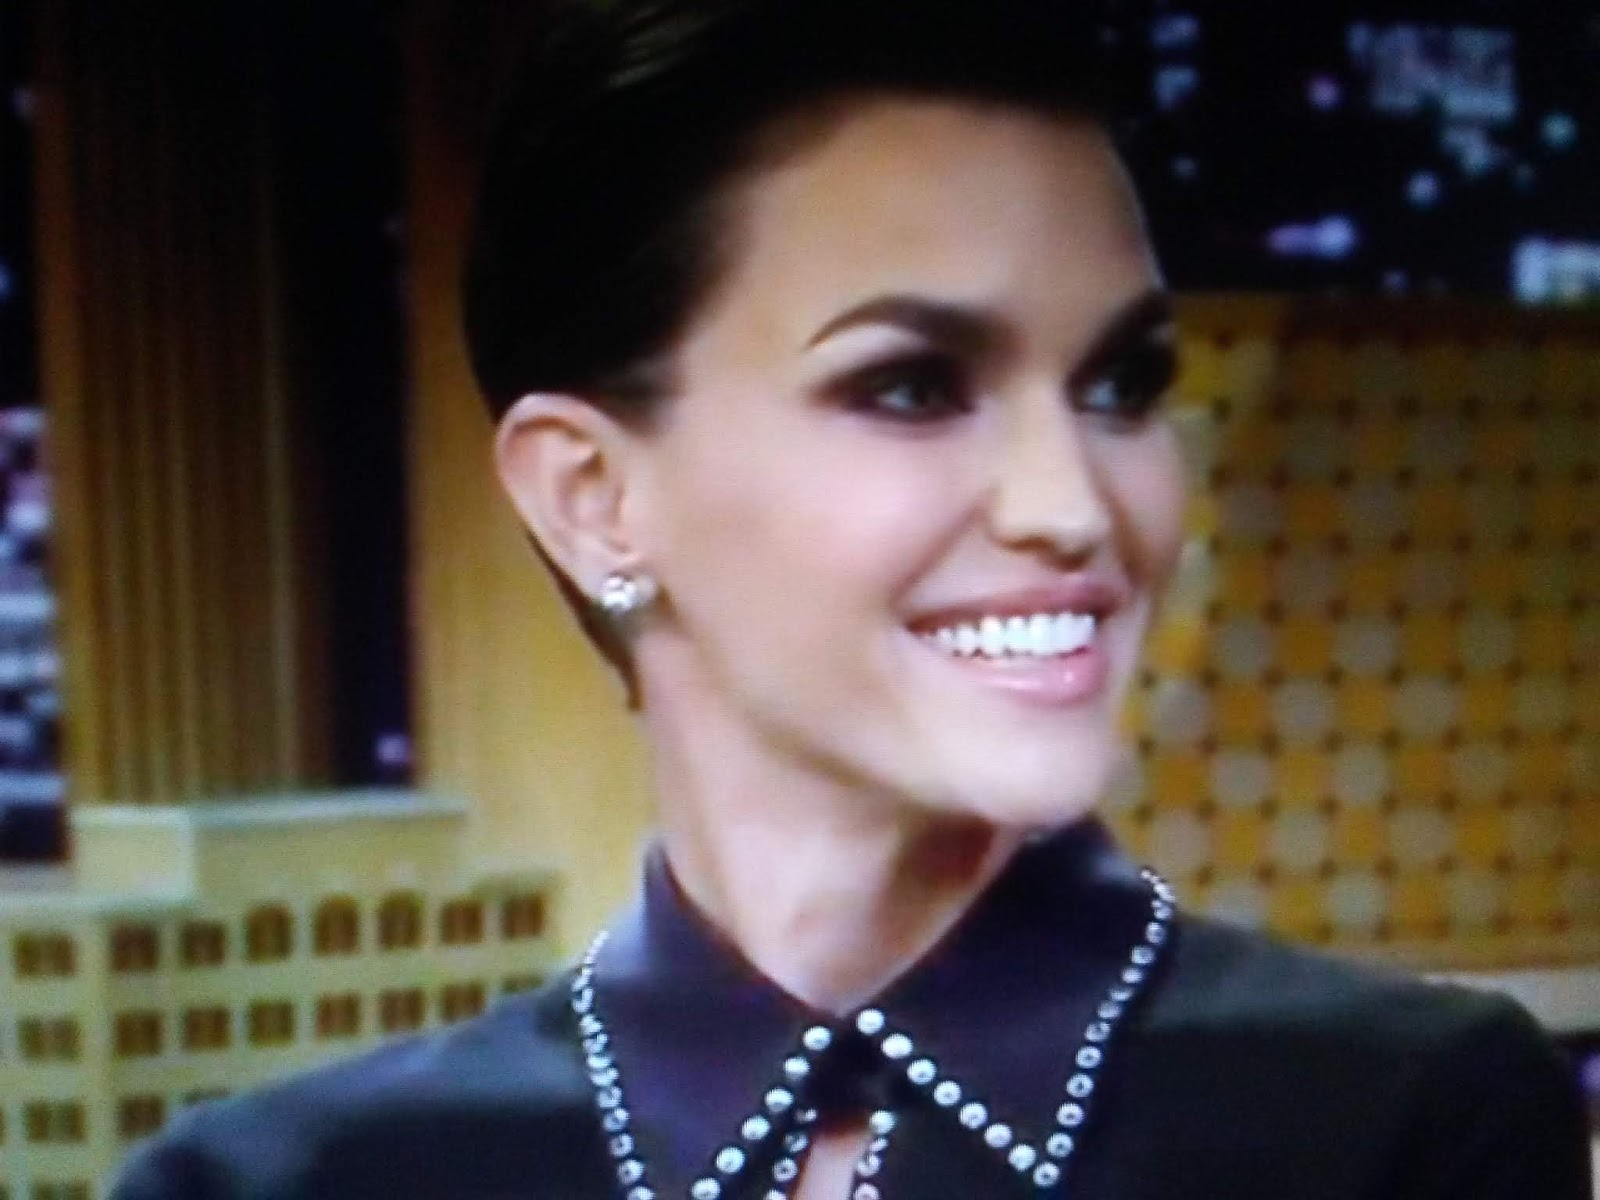 Ruby Rose Archives - Big Gay Picture Show